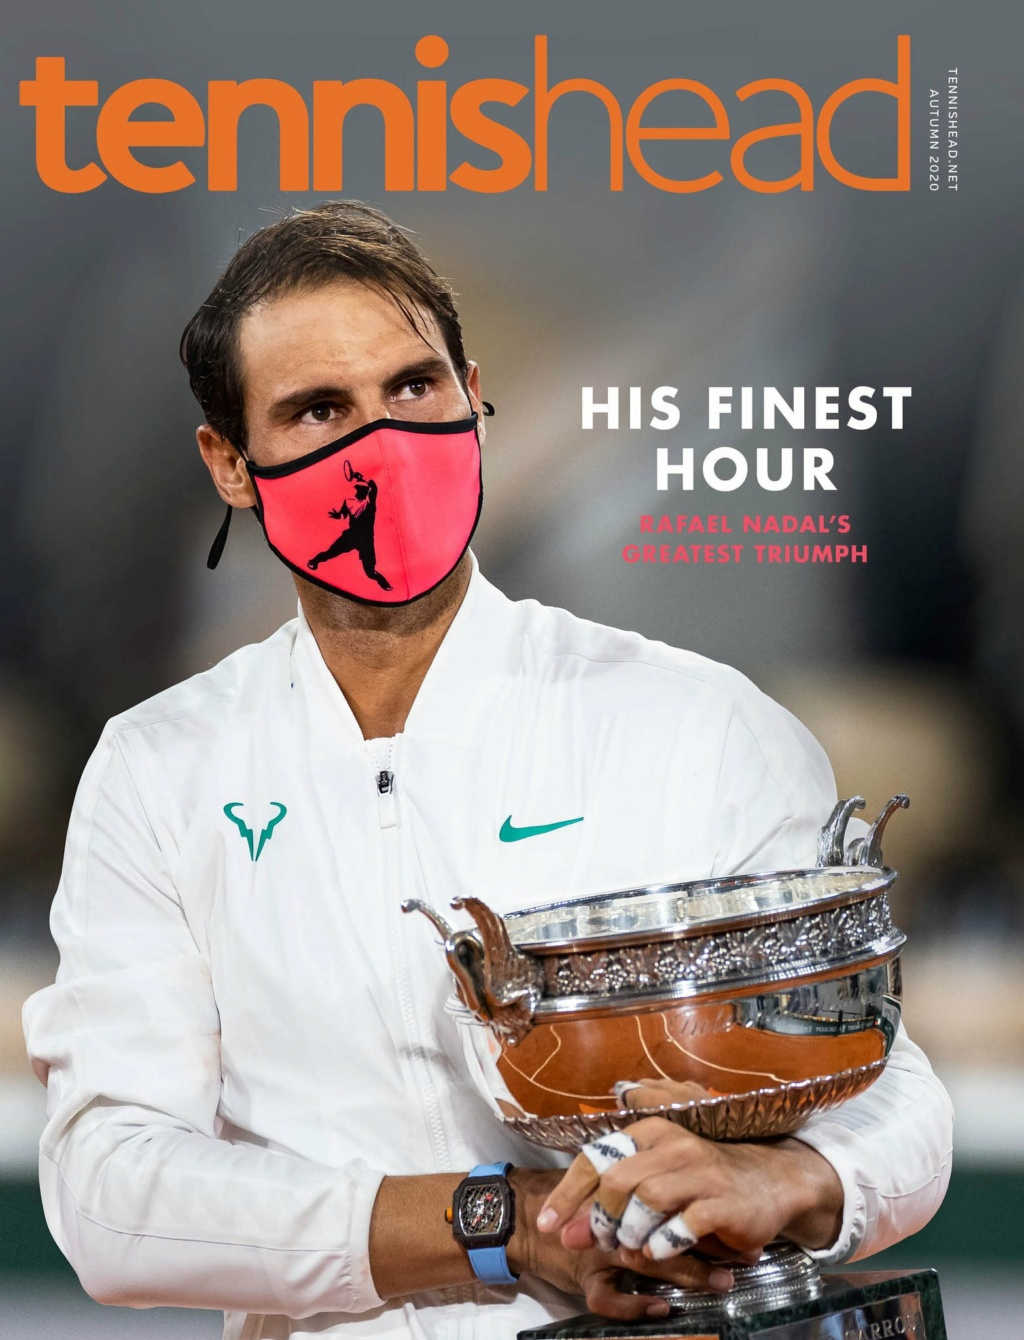 Nadal dispatches Djokovic to win record-equalling #20; responds to Federer's classy message  B4a99810